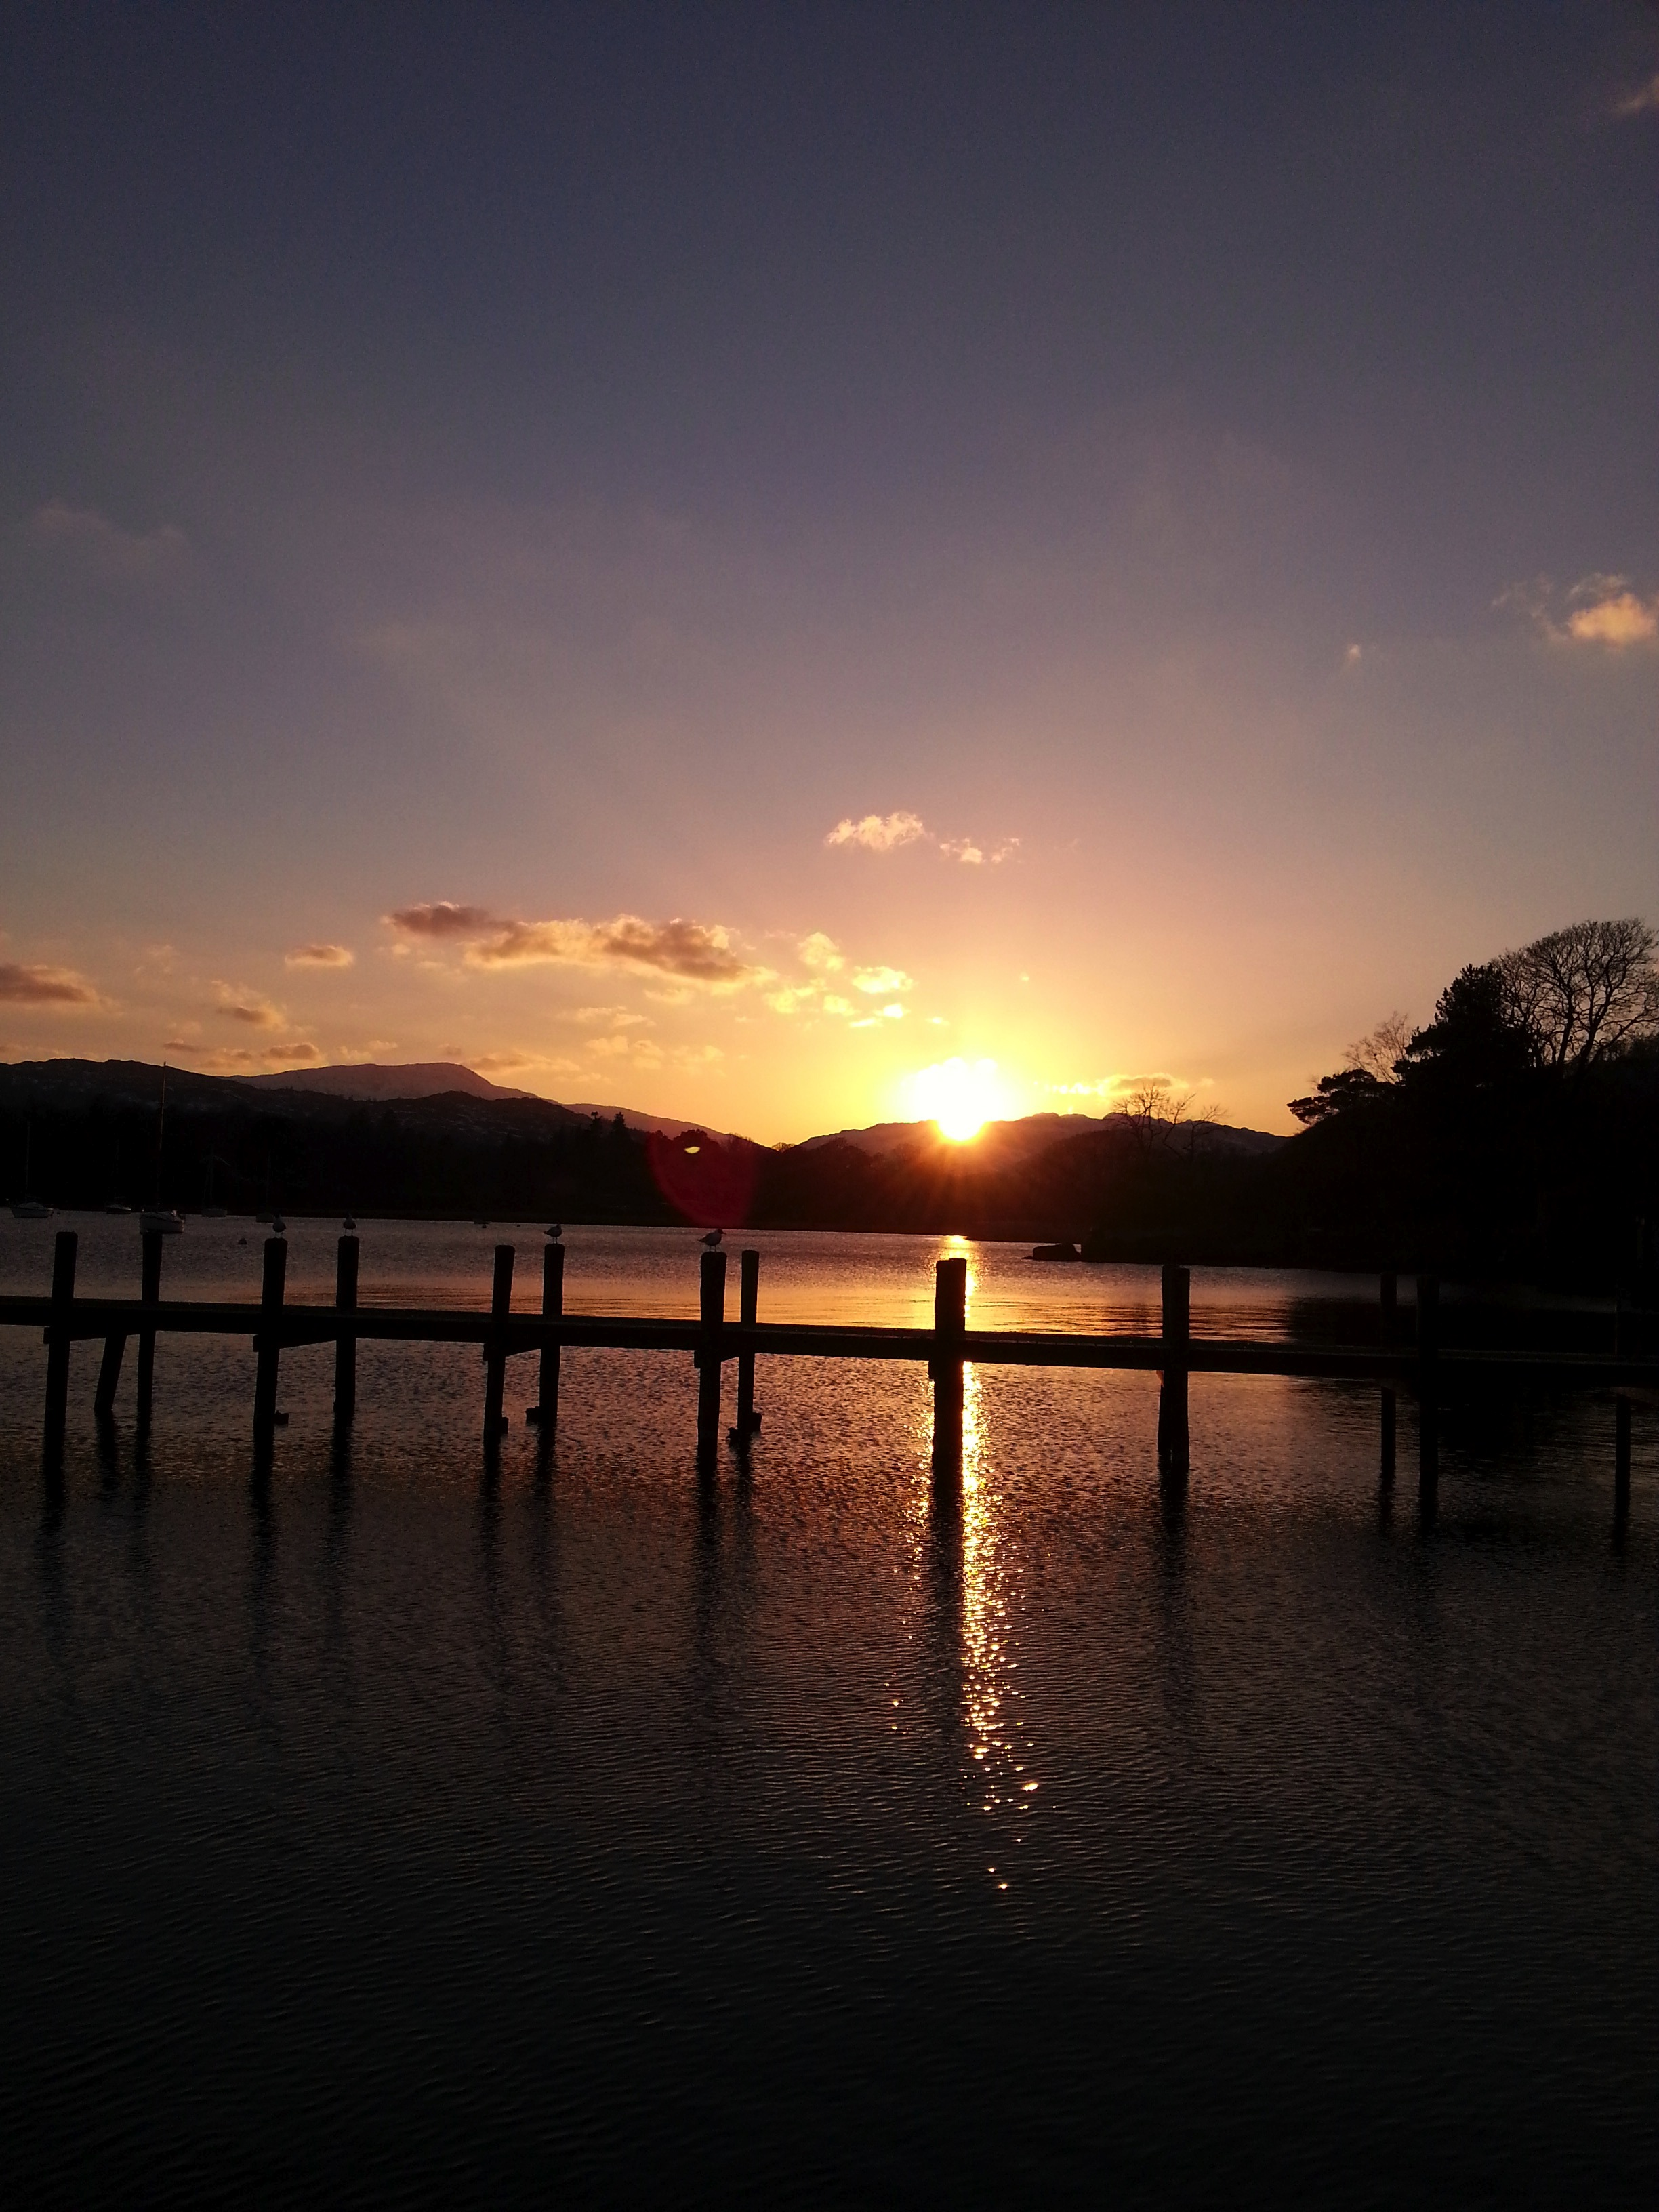 Sunset at Waterhead, Lake Windermere, Lake District.